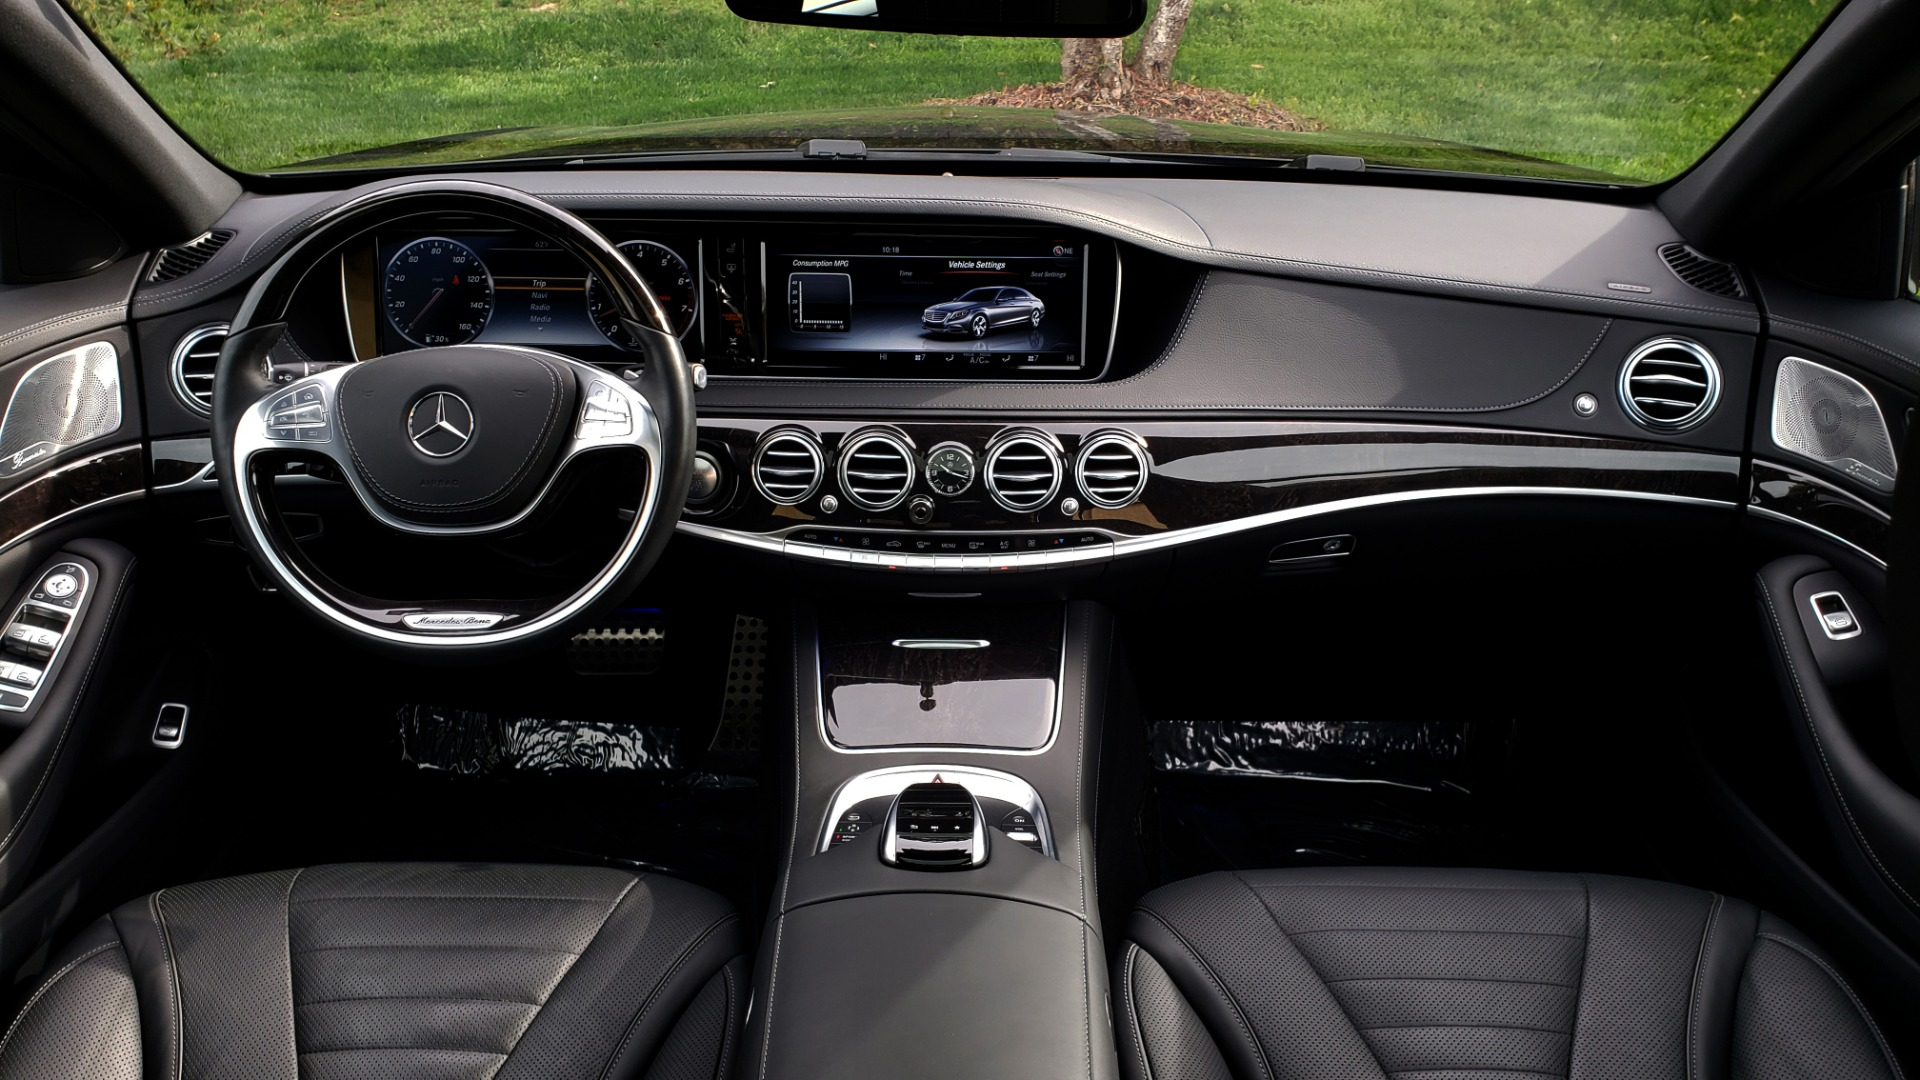 Used 2017 Mercedes-Benz S-CLASS S 550 4MATIC SPORT / PREM PKG / WARMTH & COMFORT / KEYLESS-GO for sale Sold at Formula Imports in Charlotte NC 28227 91